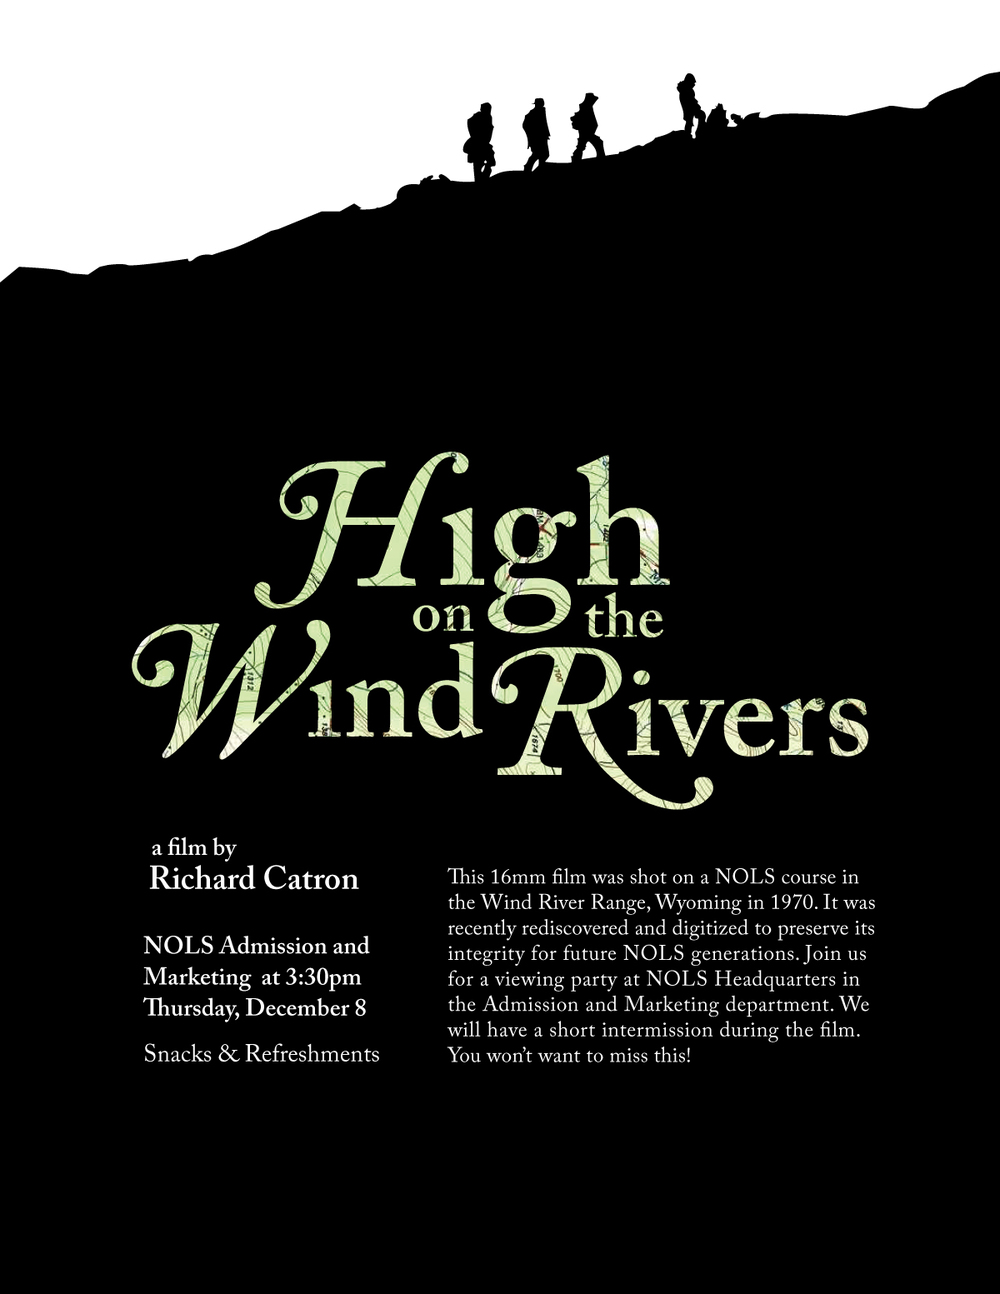 High on the Wind Rivers